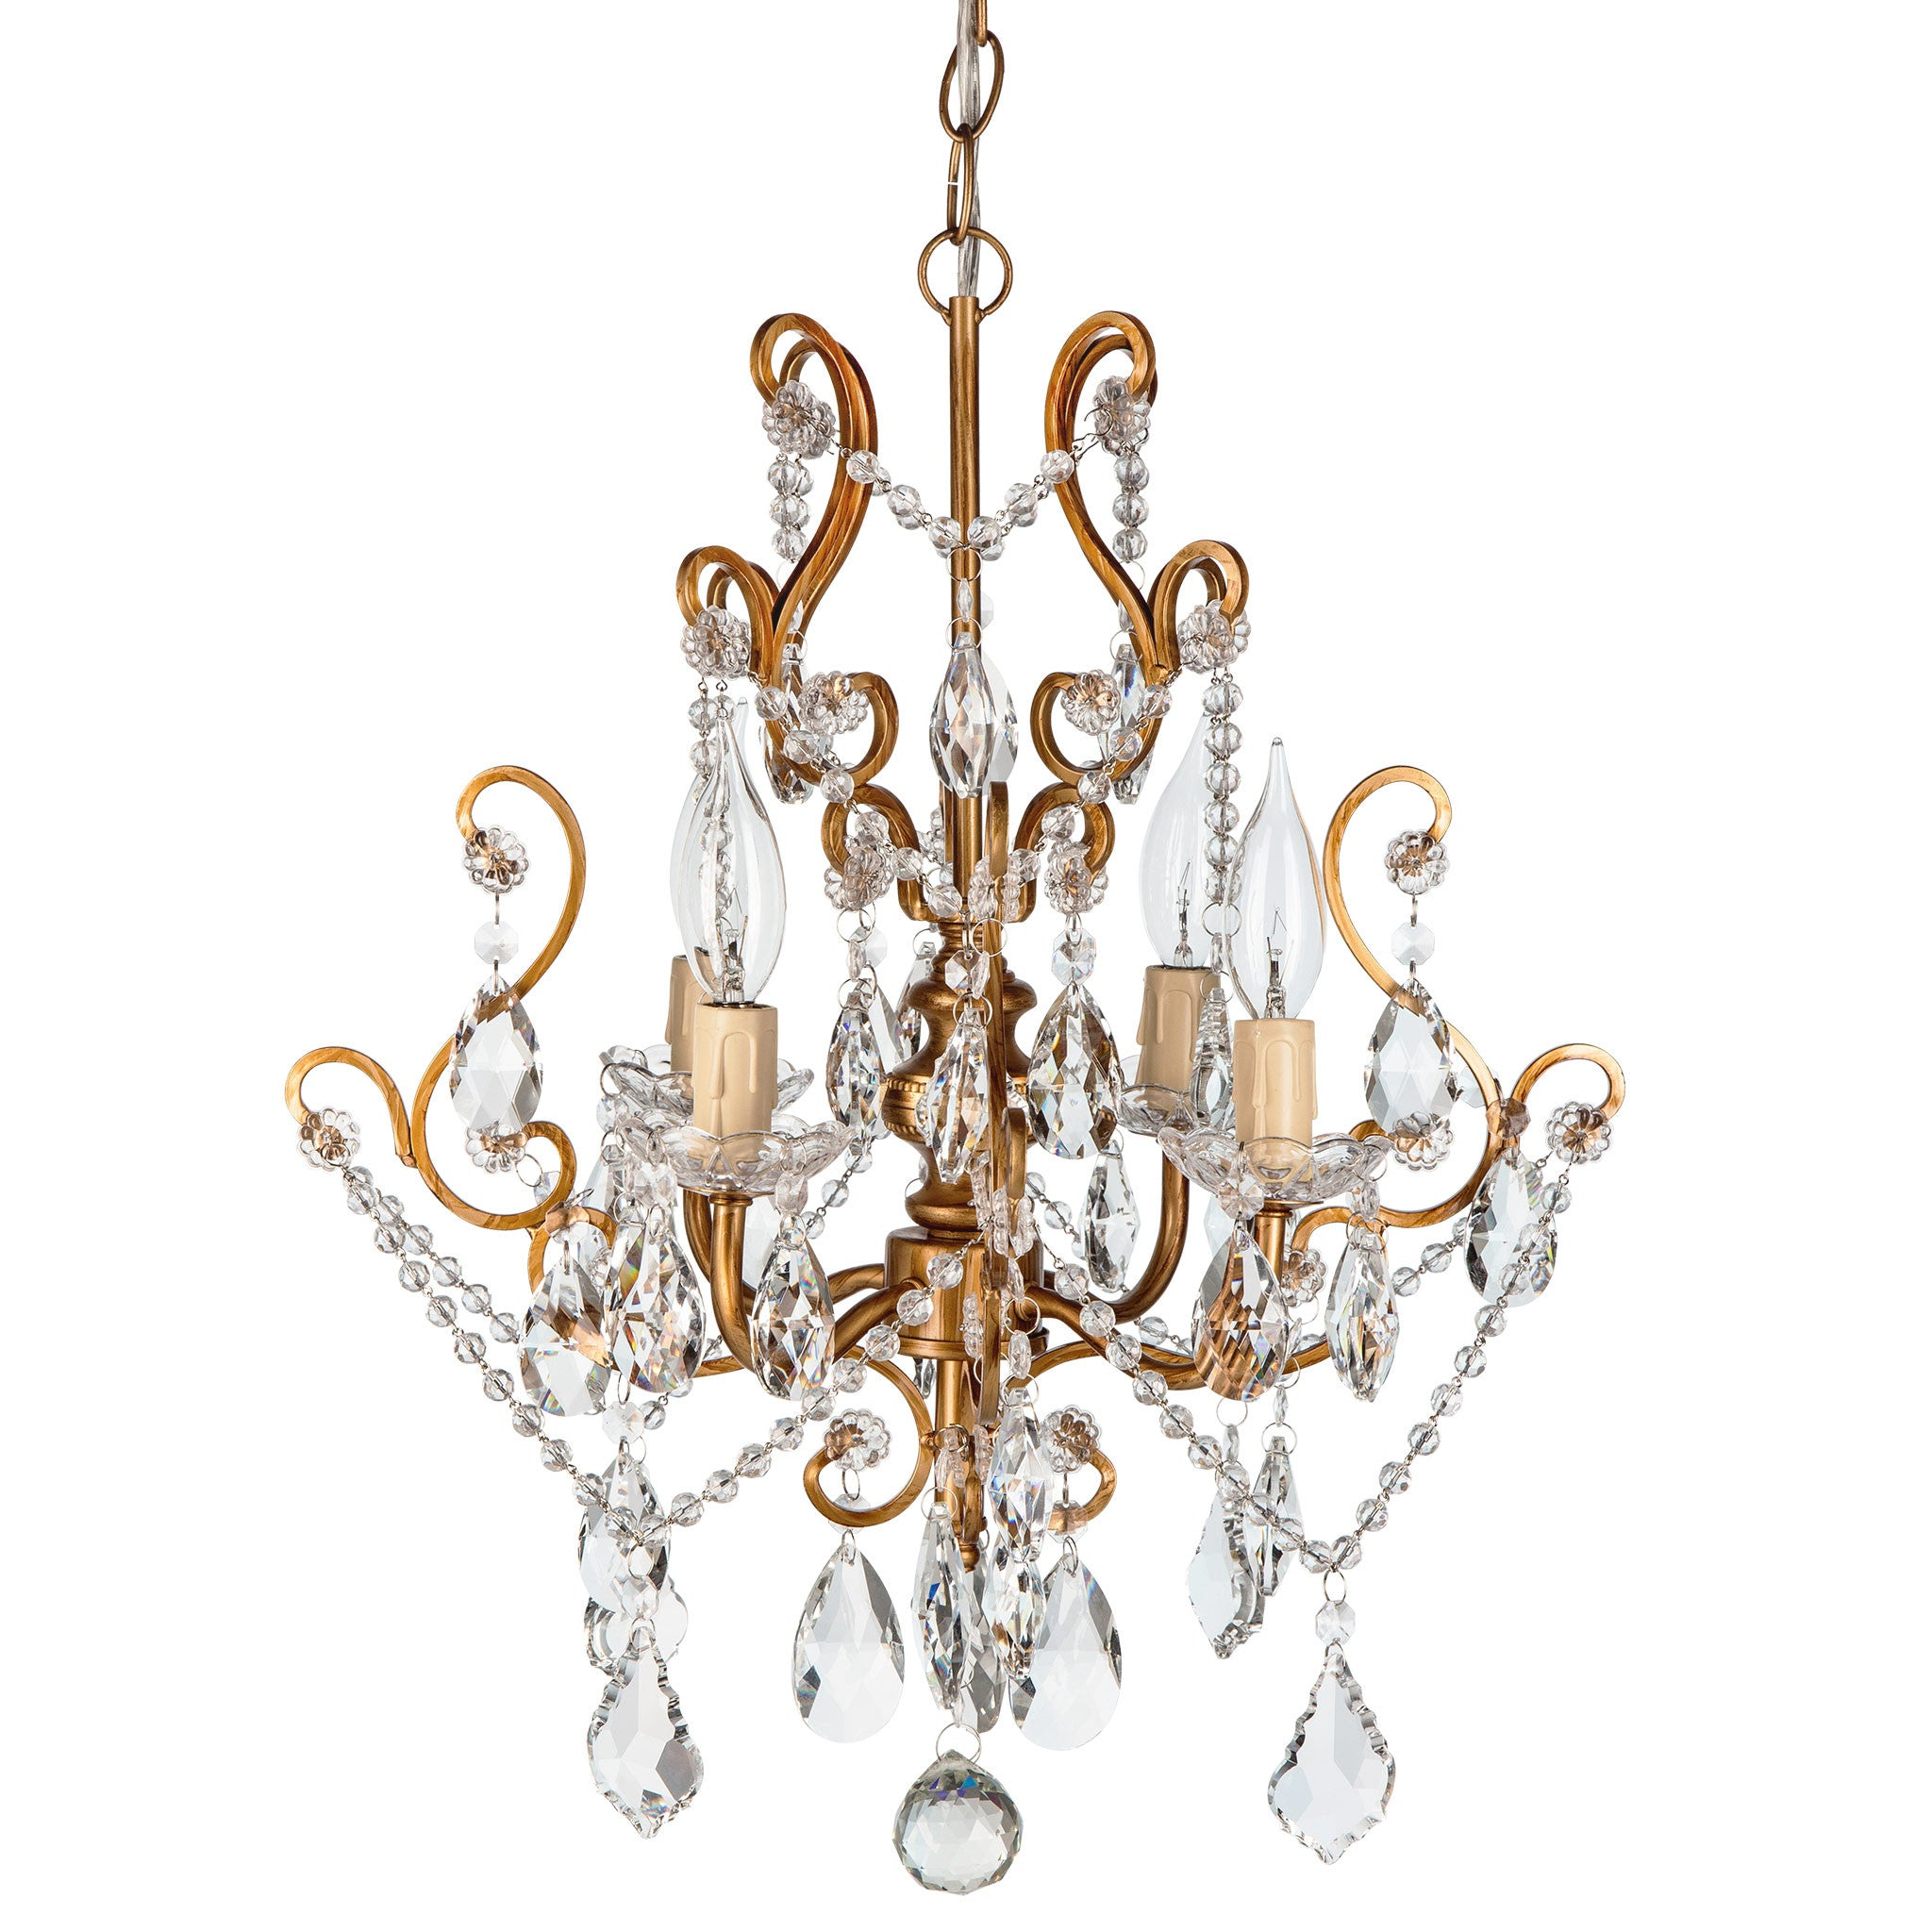 Theresa vintage gold crystal plug in chandelier amalfi decor theresa 4 light antique gold crystal chandelier product video amalfi decor aloadofball Gallery